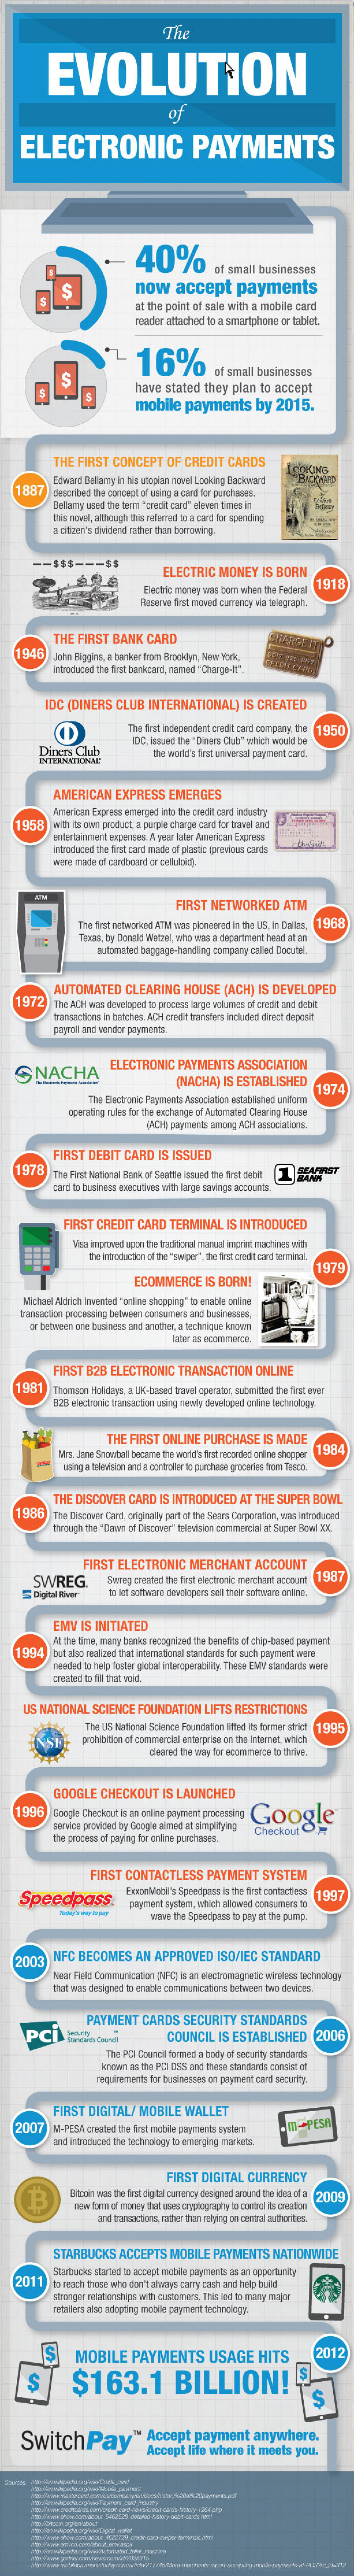 The Evolution of Electronic Payments Infographic